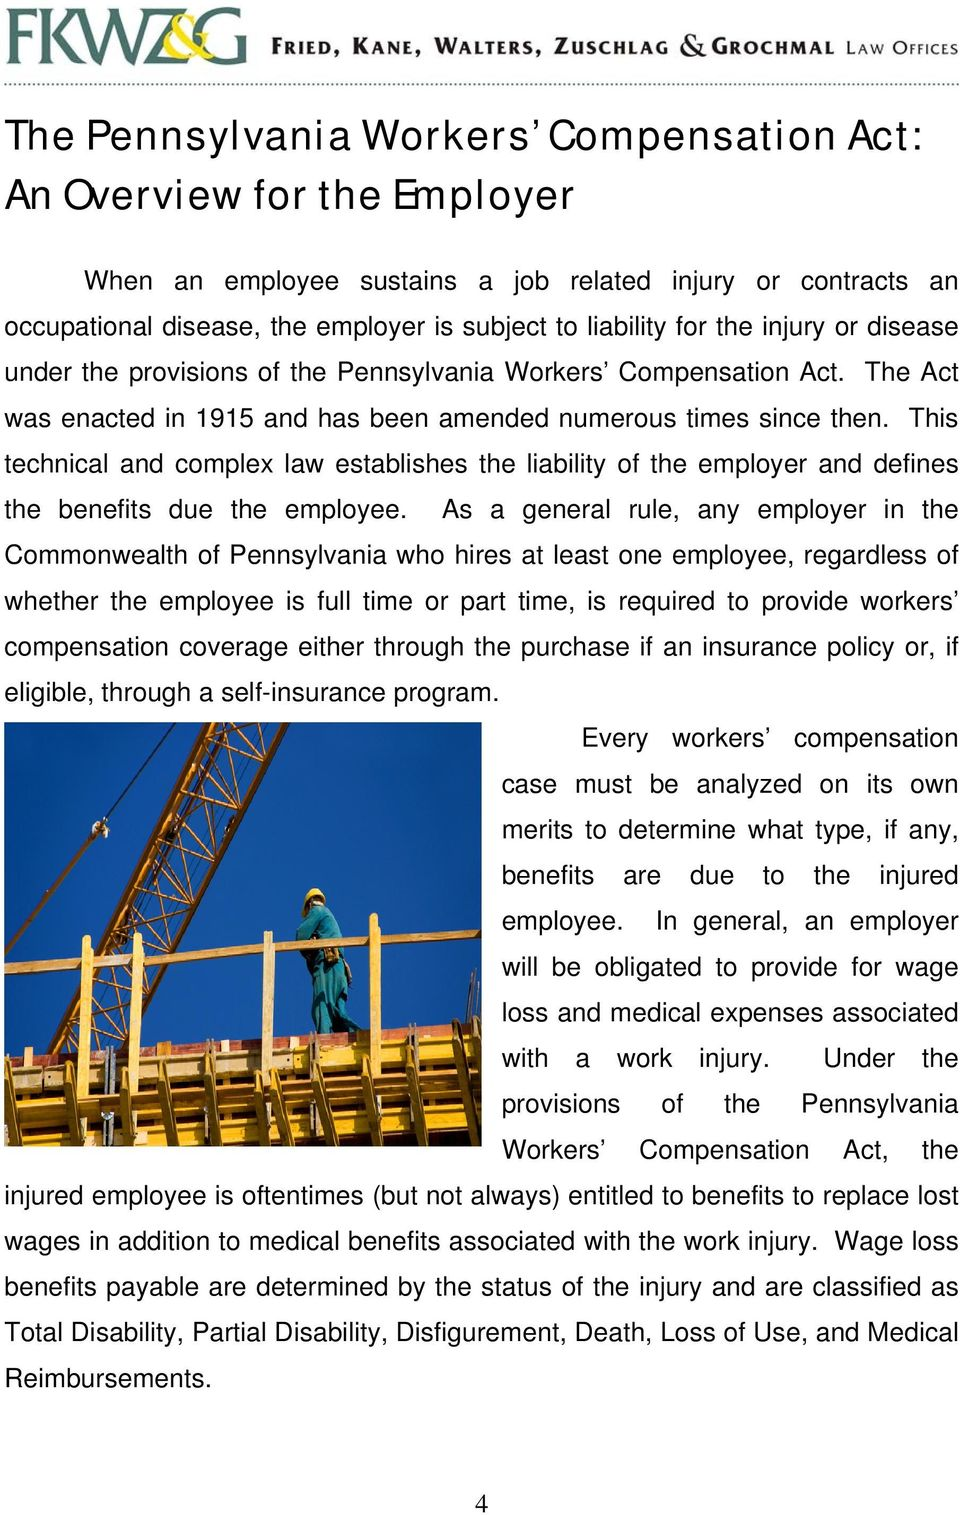 This technical and complex law establishes the liability of the employer and defines the benefits due the employee.